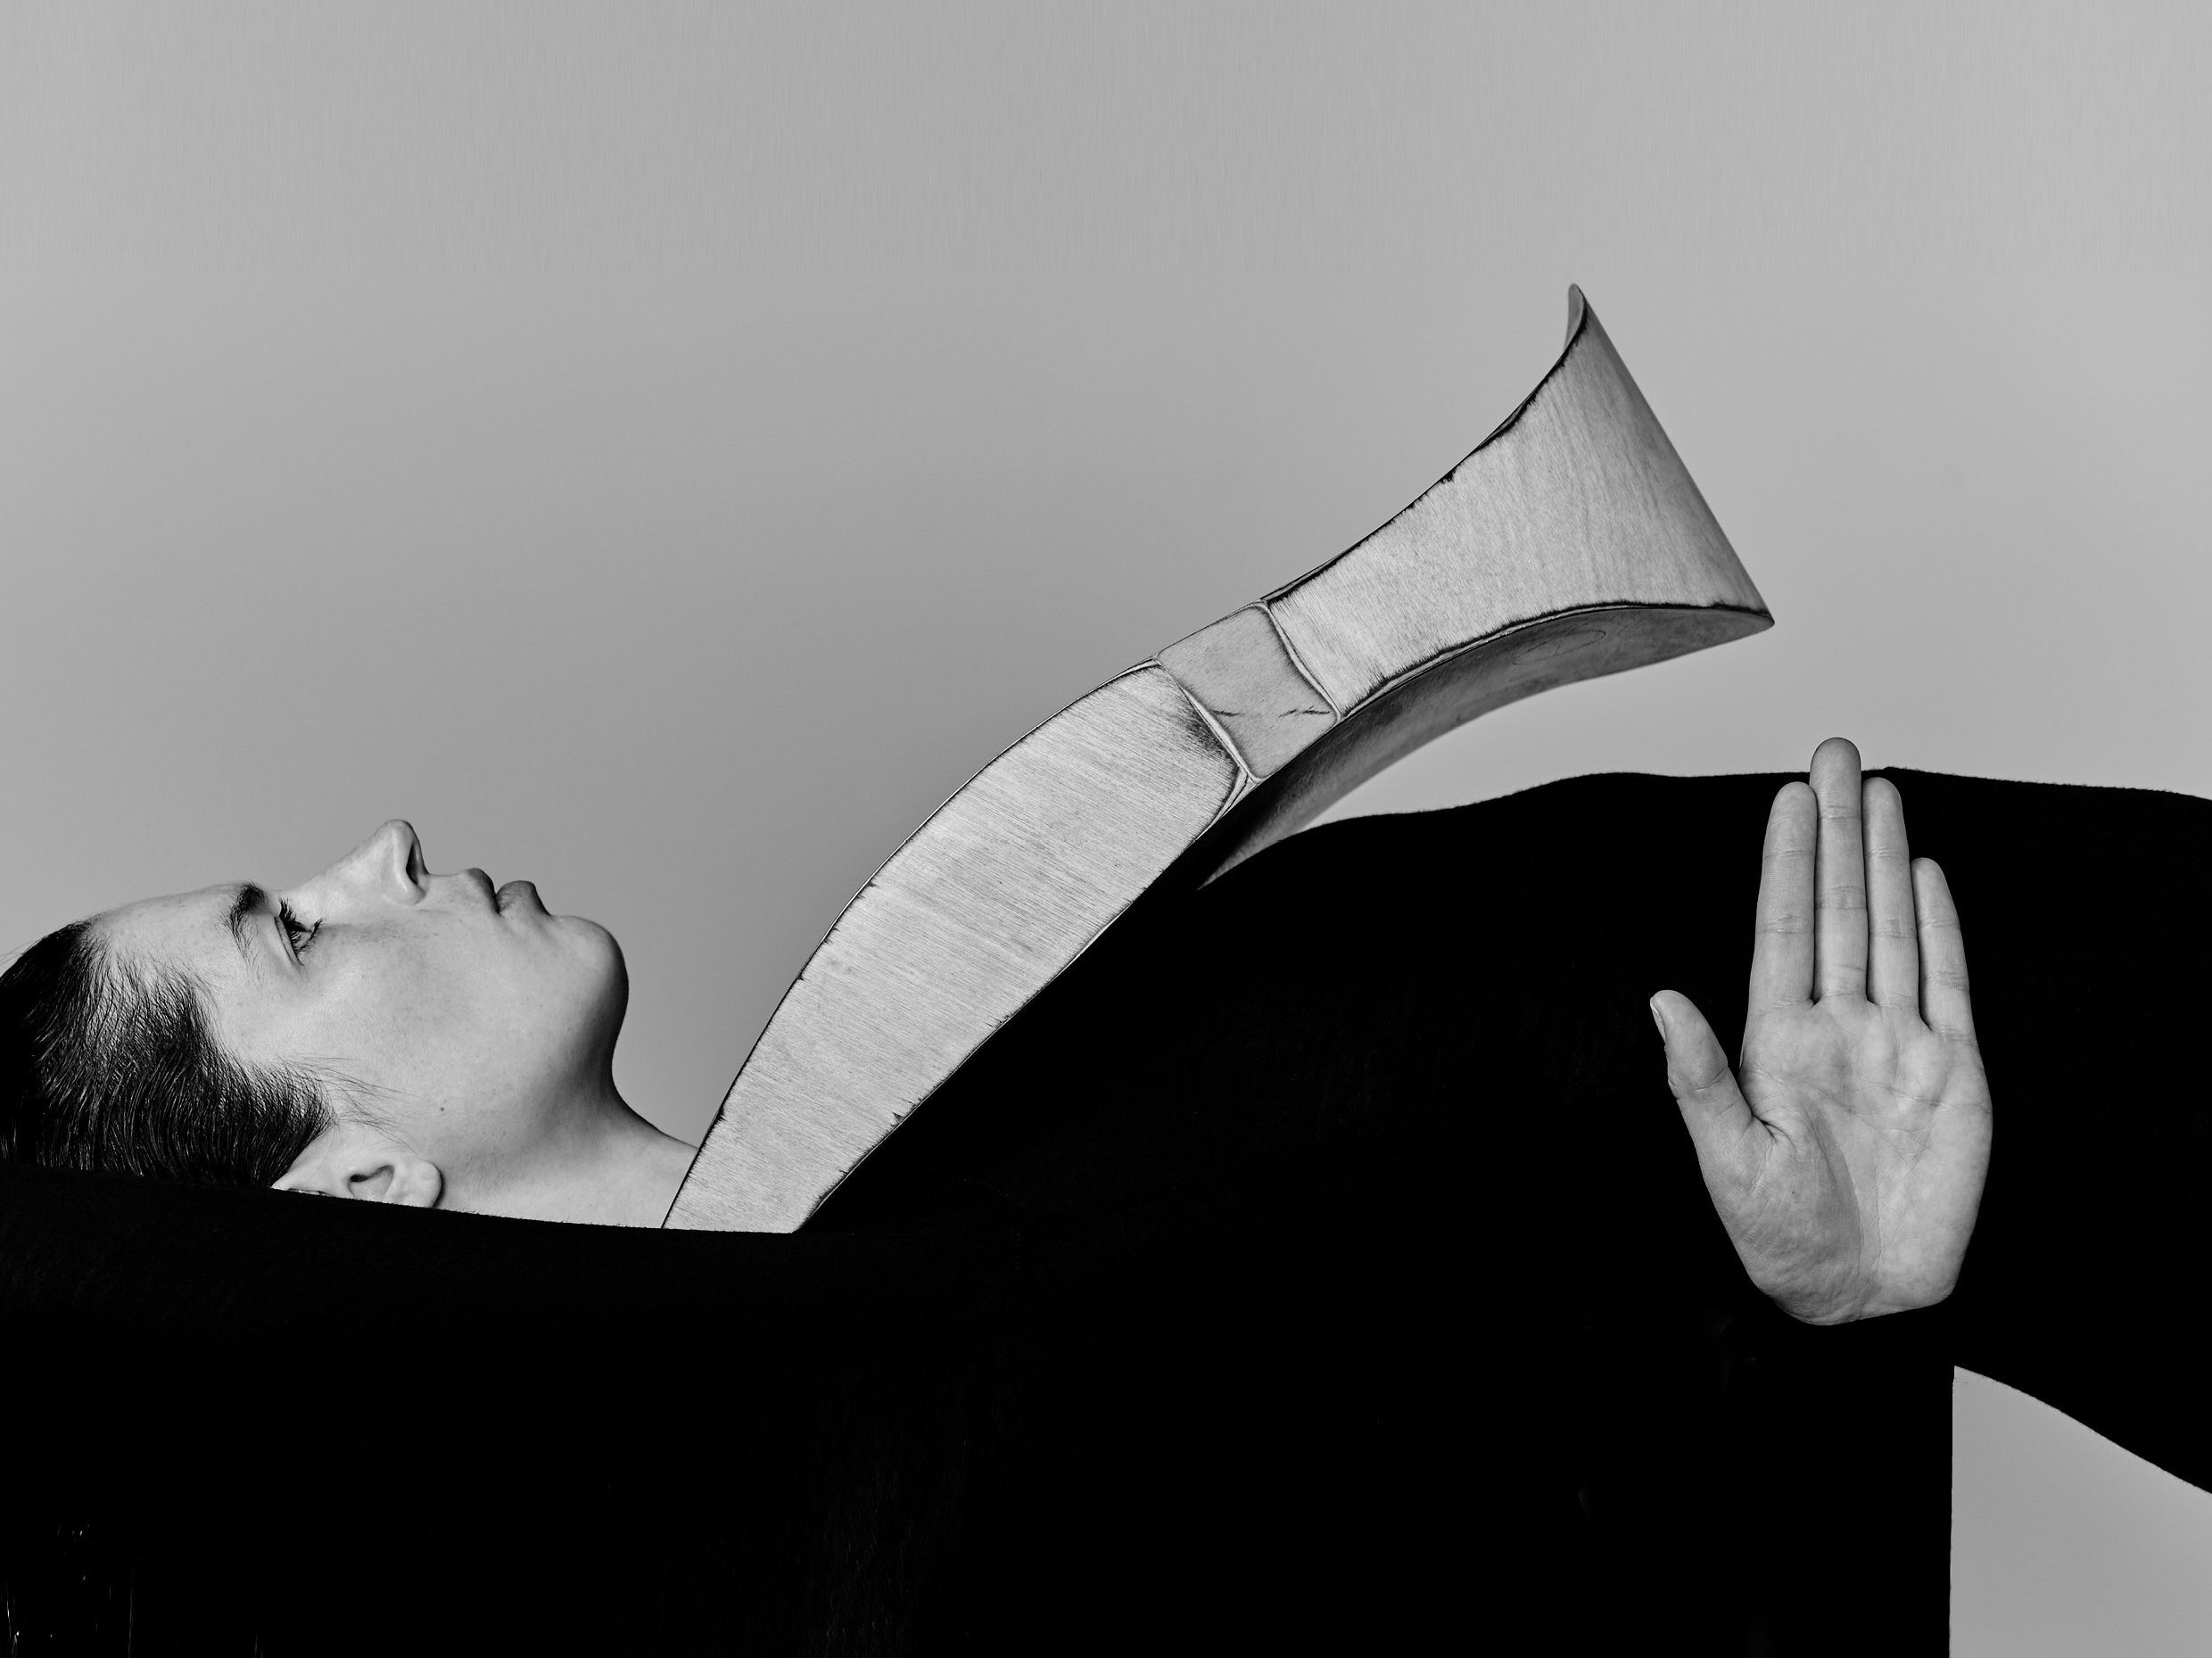 Black and white image of model on their back with extra large accessory on their nexk